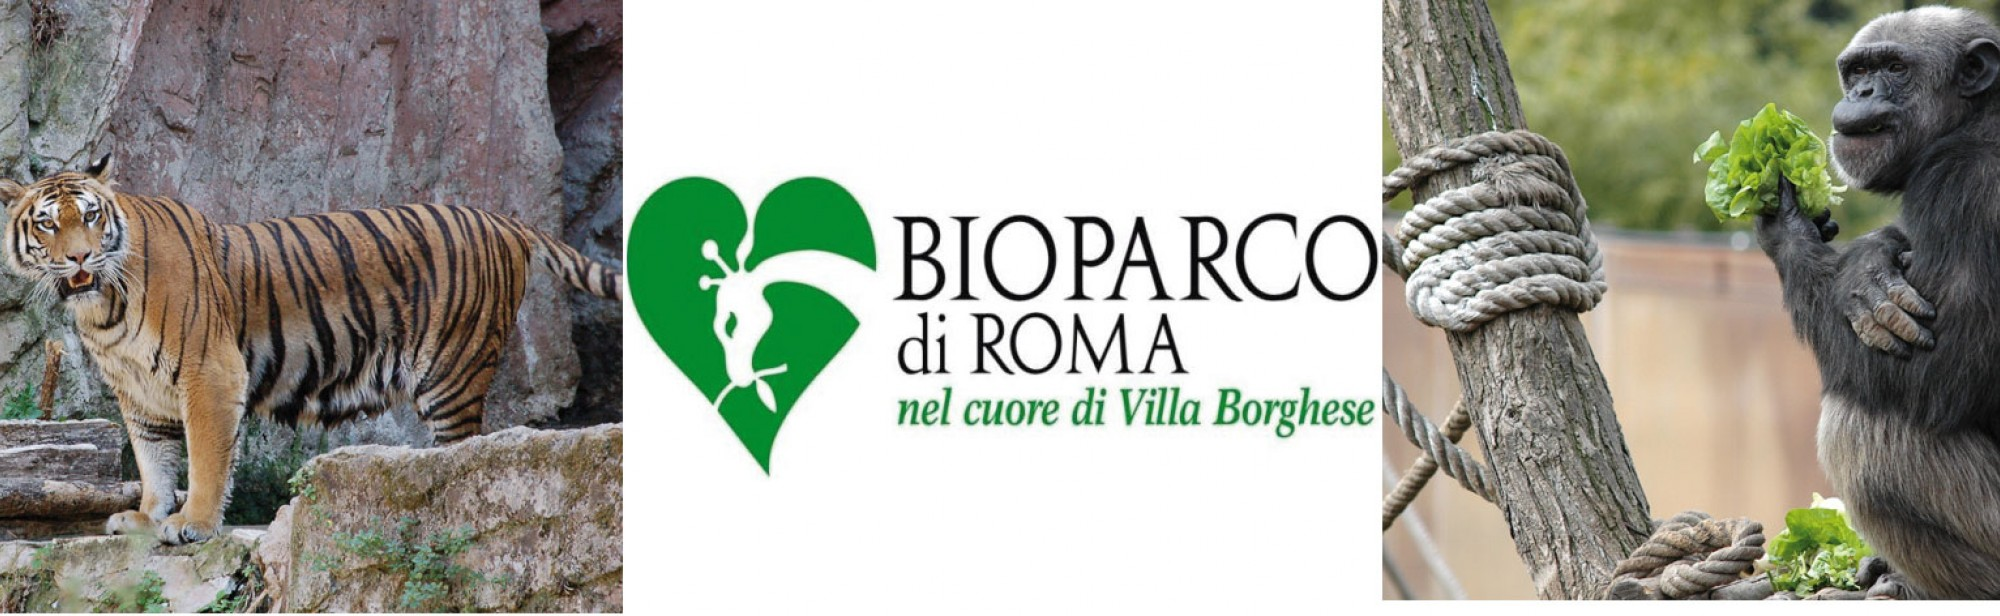 Bioparco Rome, Accommodations area Bioparco Rome